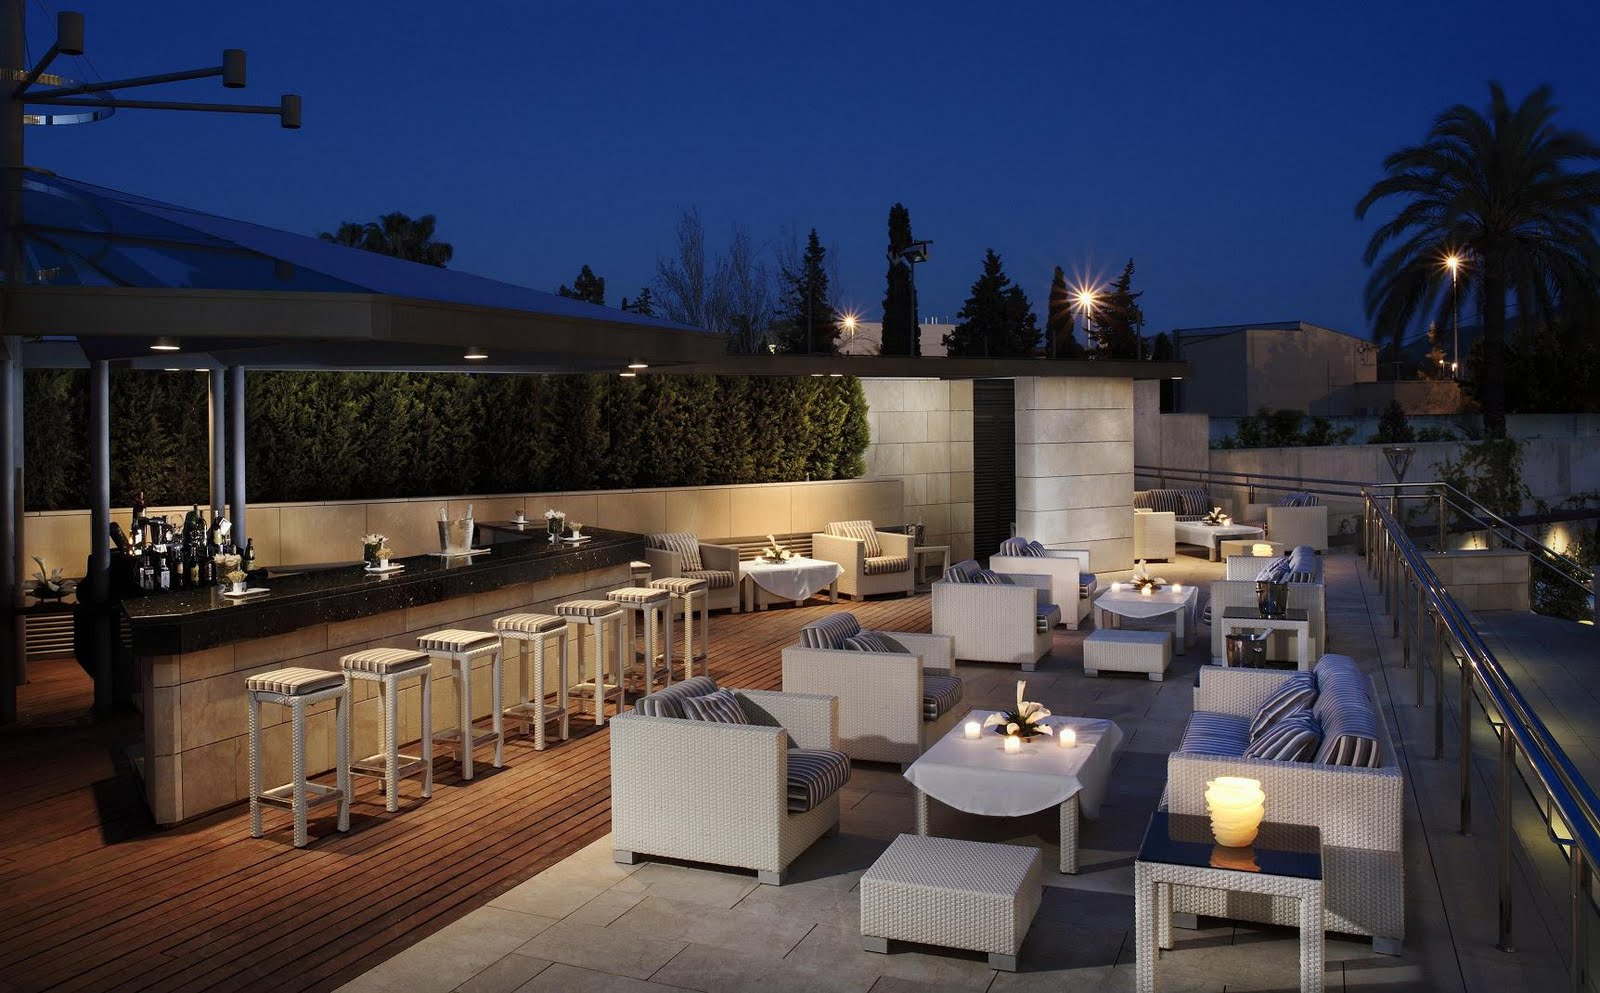 Blog del hotel santos nelva abrimos la terraza bar chill out - Terraza chill out ...